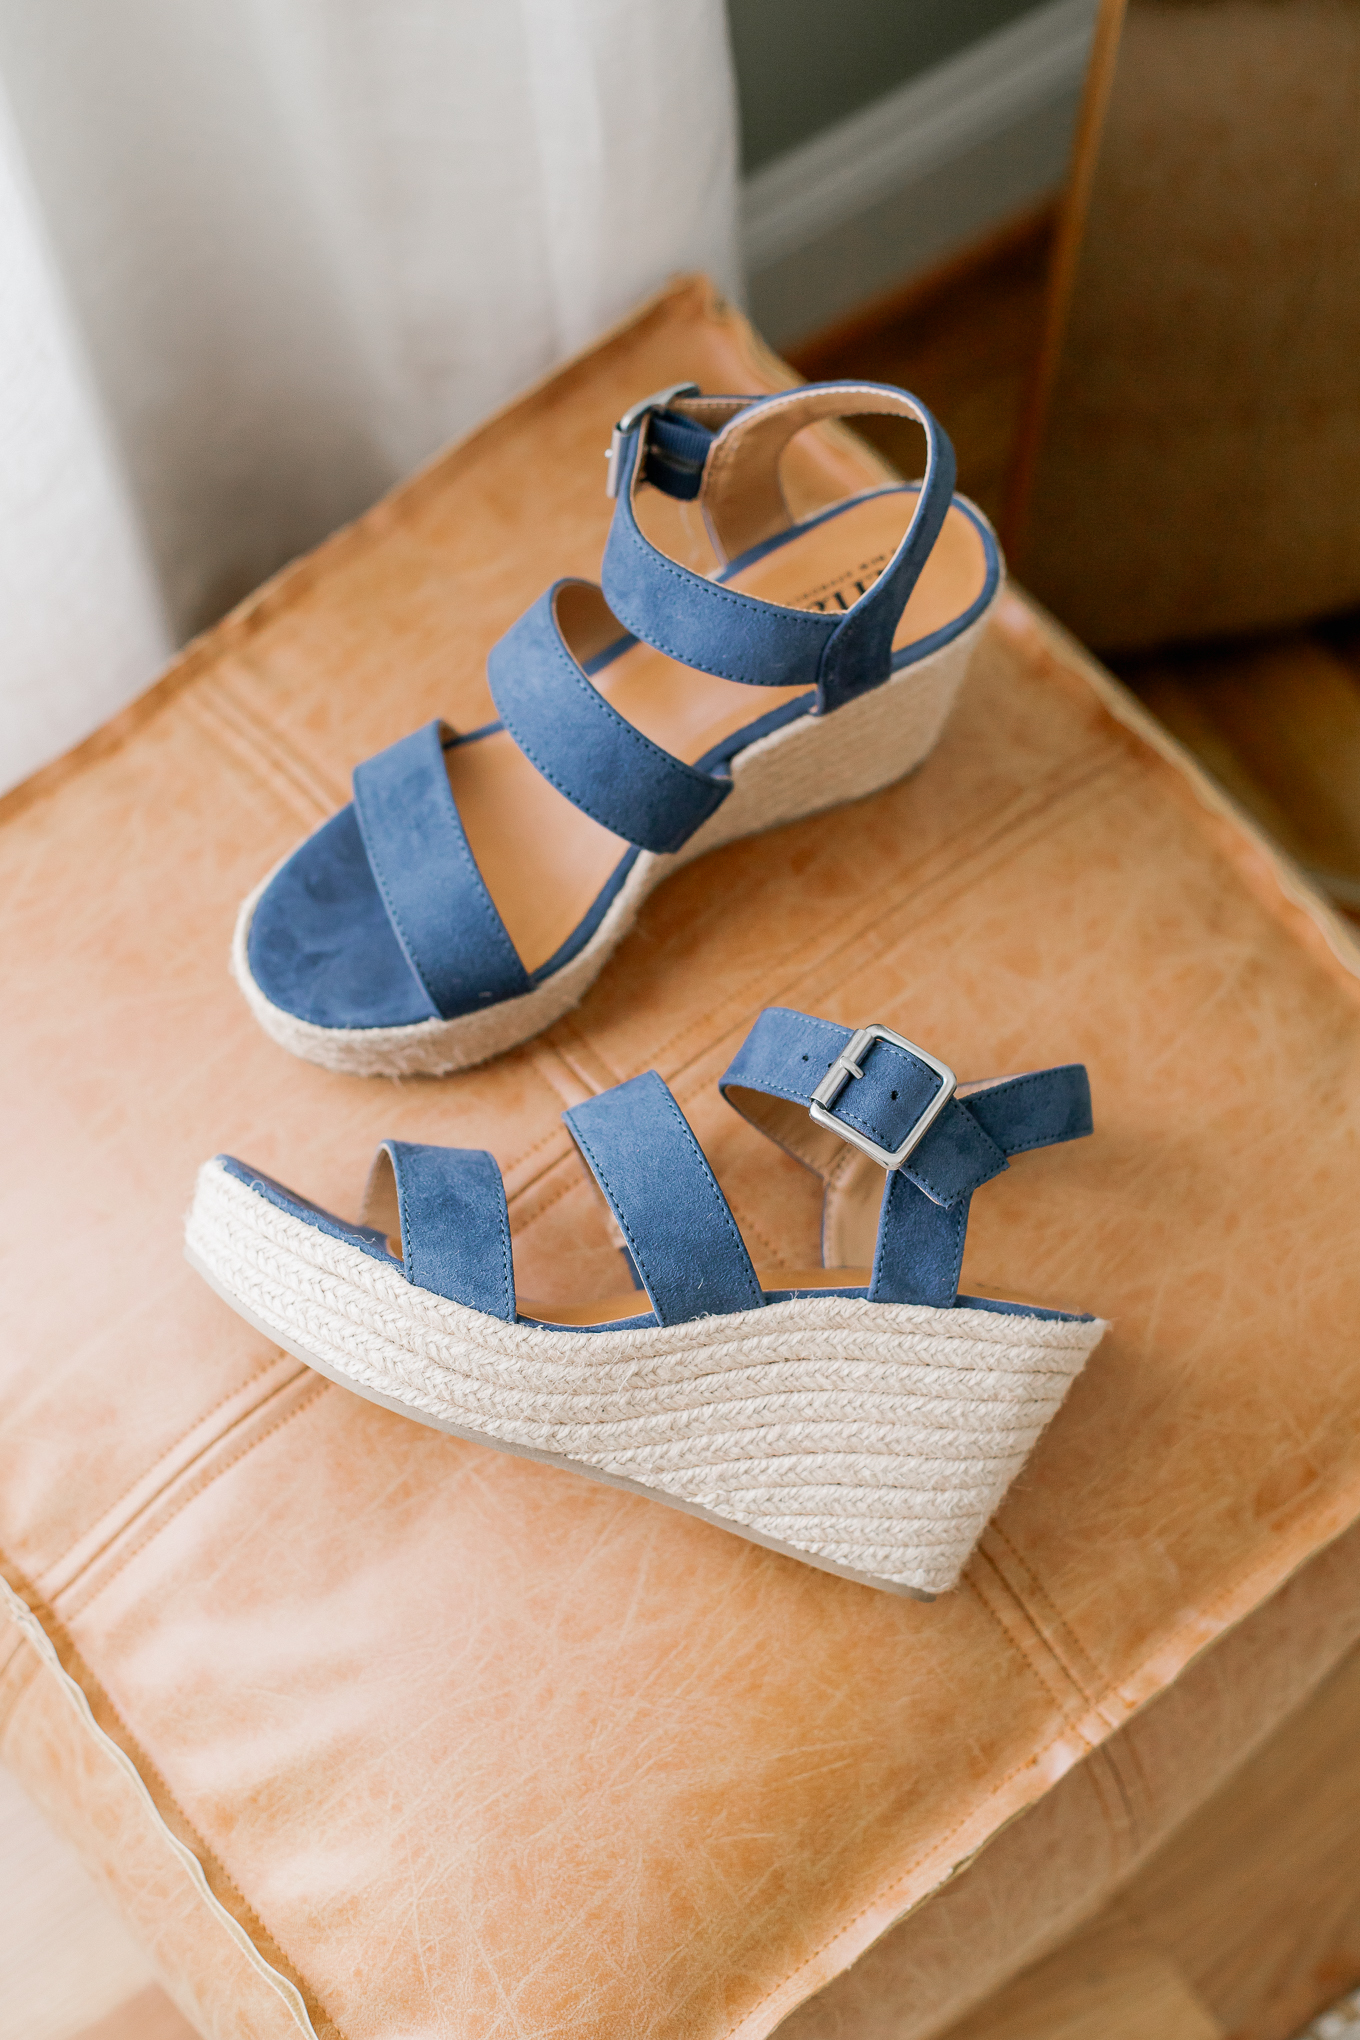 The BEST Affordable Spring Sandals for Women | Blue Suede Espadrilles | Louella Reese